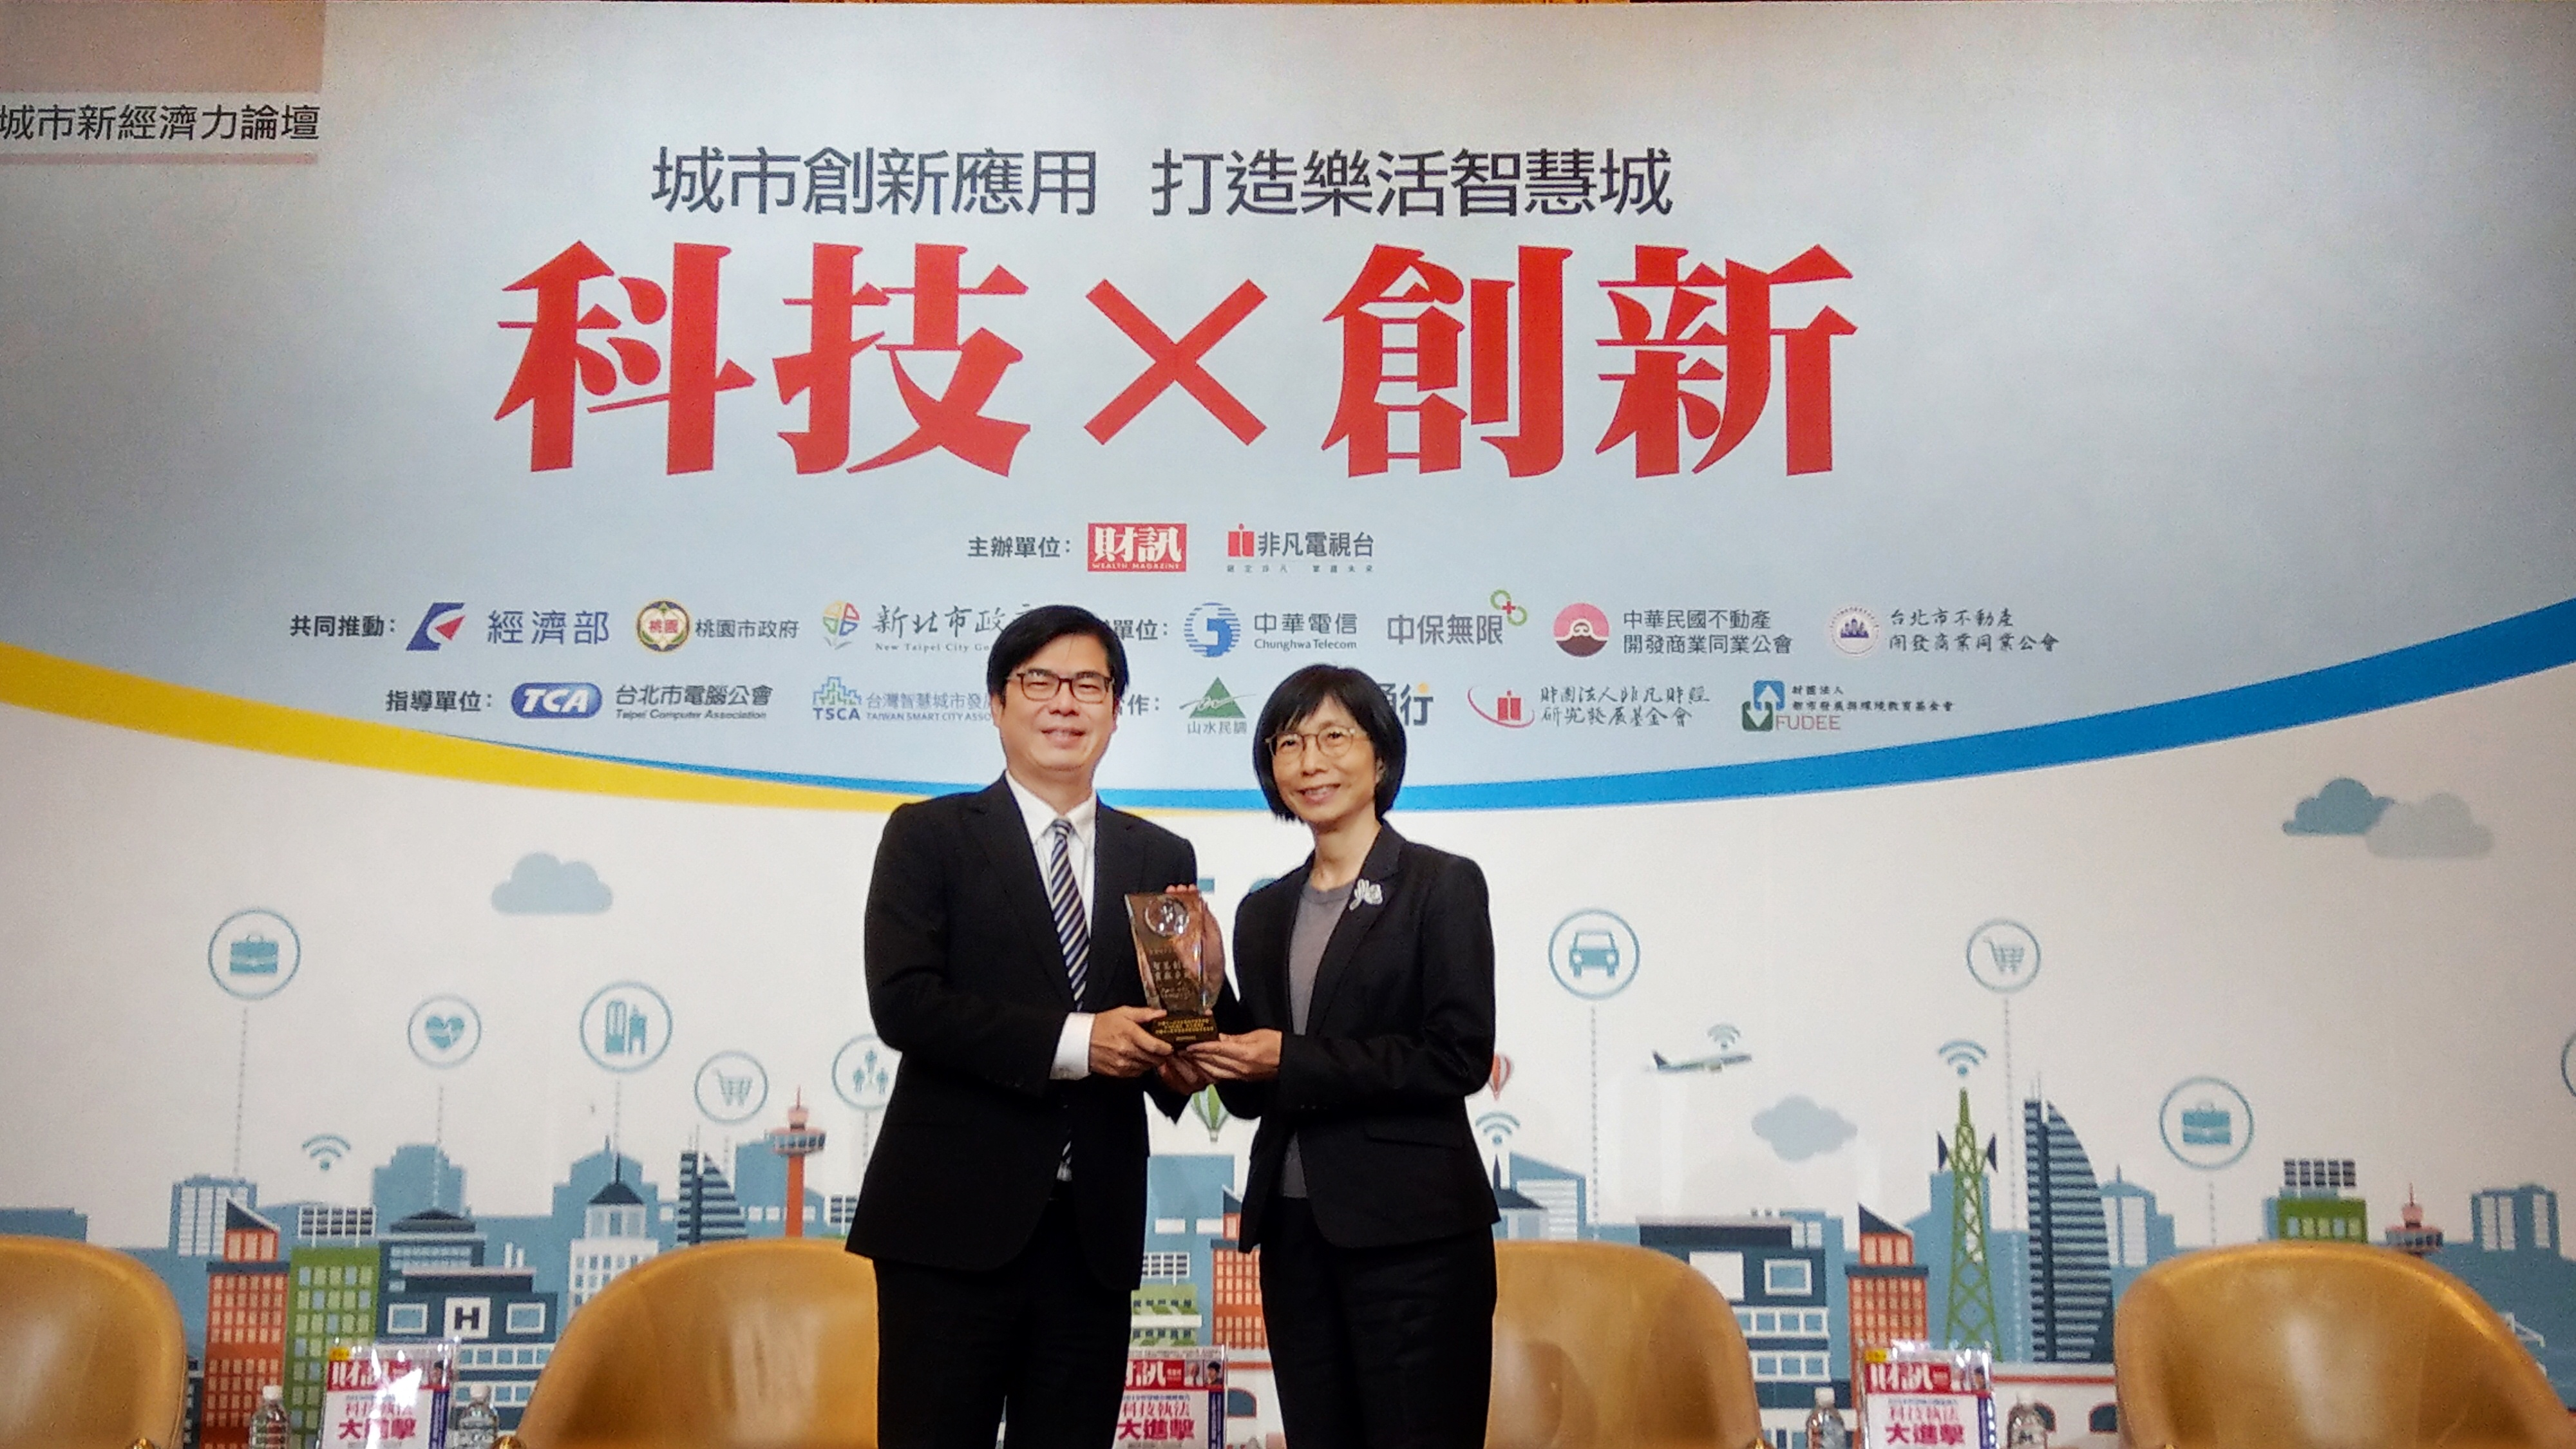 Sophia Chiu Awarded for Contribution to Smart City